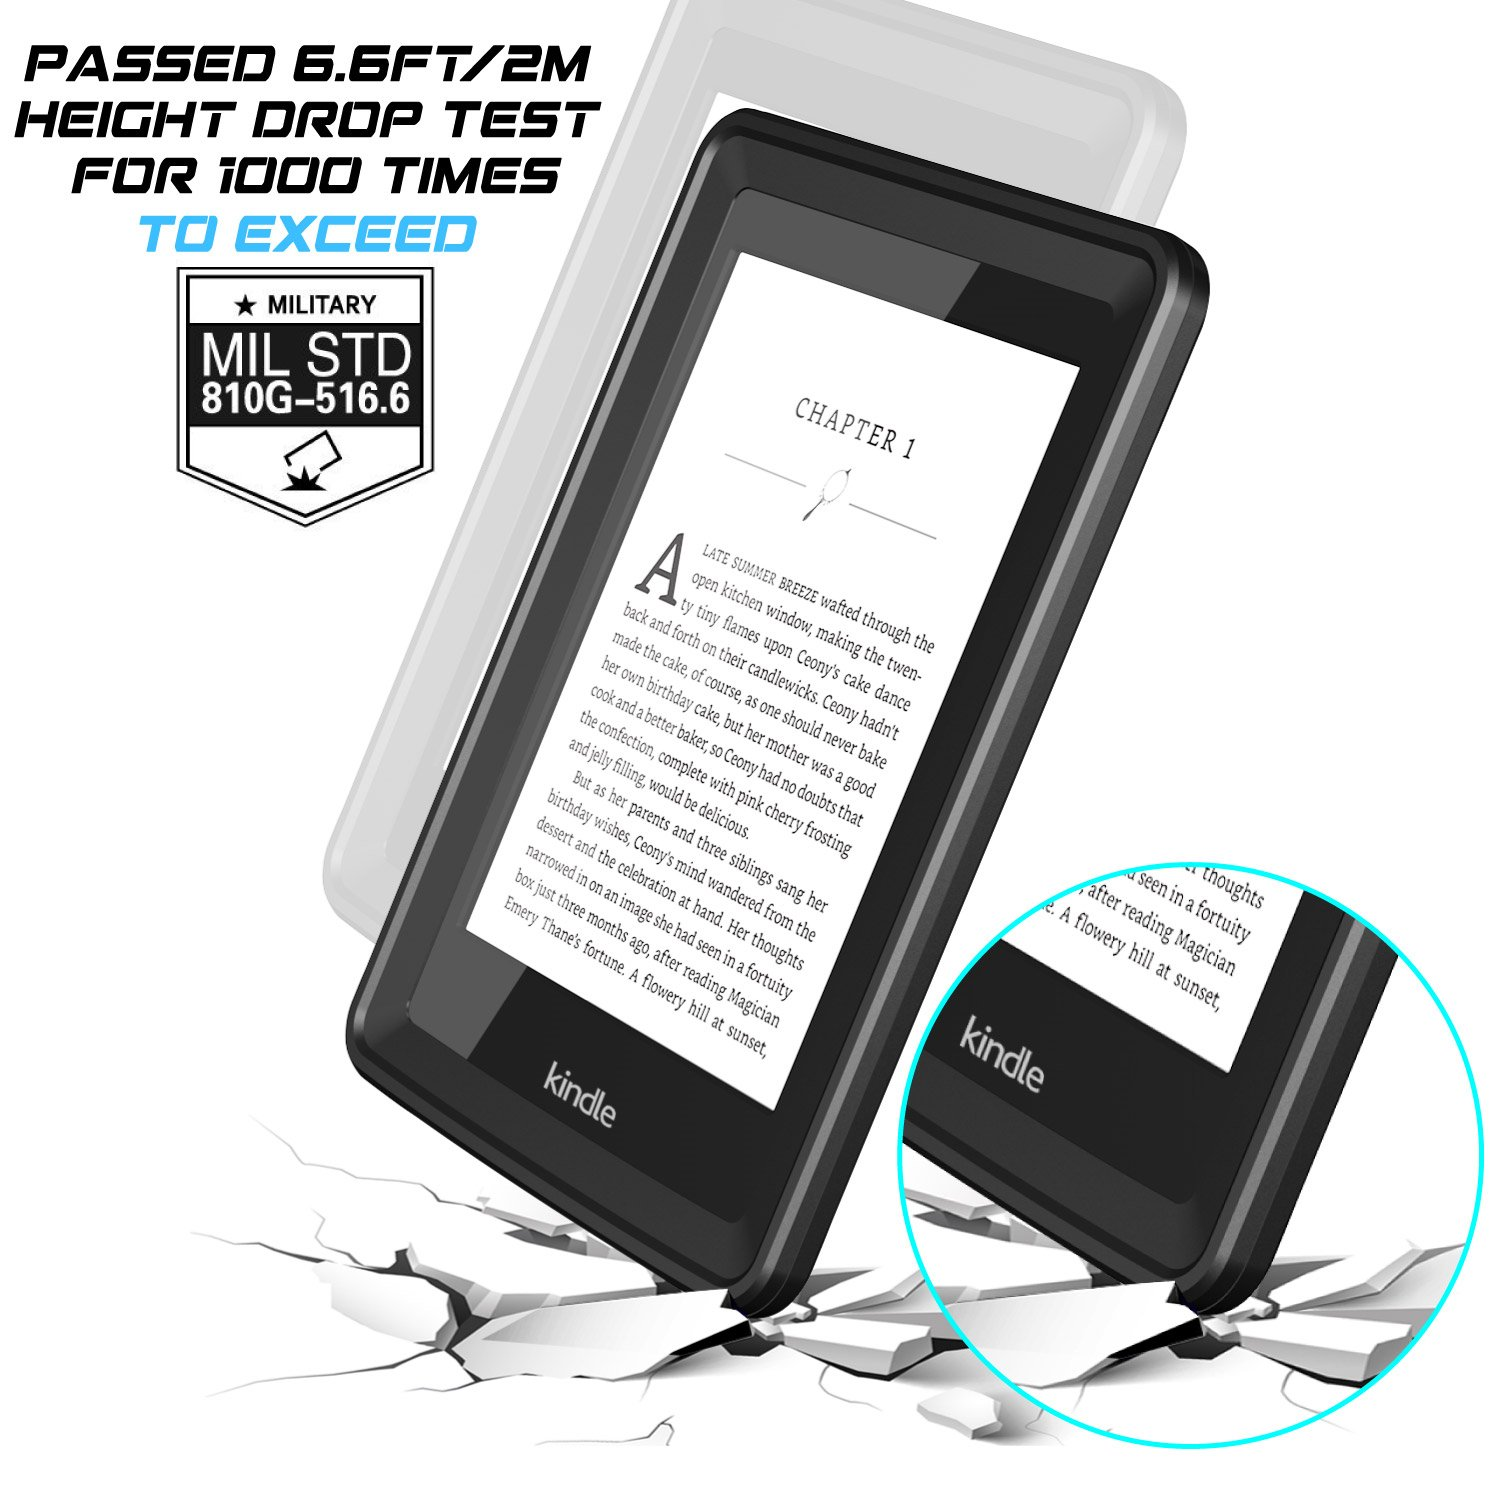 Temdan Kindle Paperwhite Waterproof Case Rugged Sleek Transparent Cover with Built in Screen Protector Waterproof Case for Kindle Paperwhite. by Temdan (Image #3)